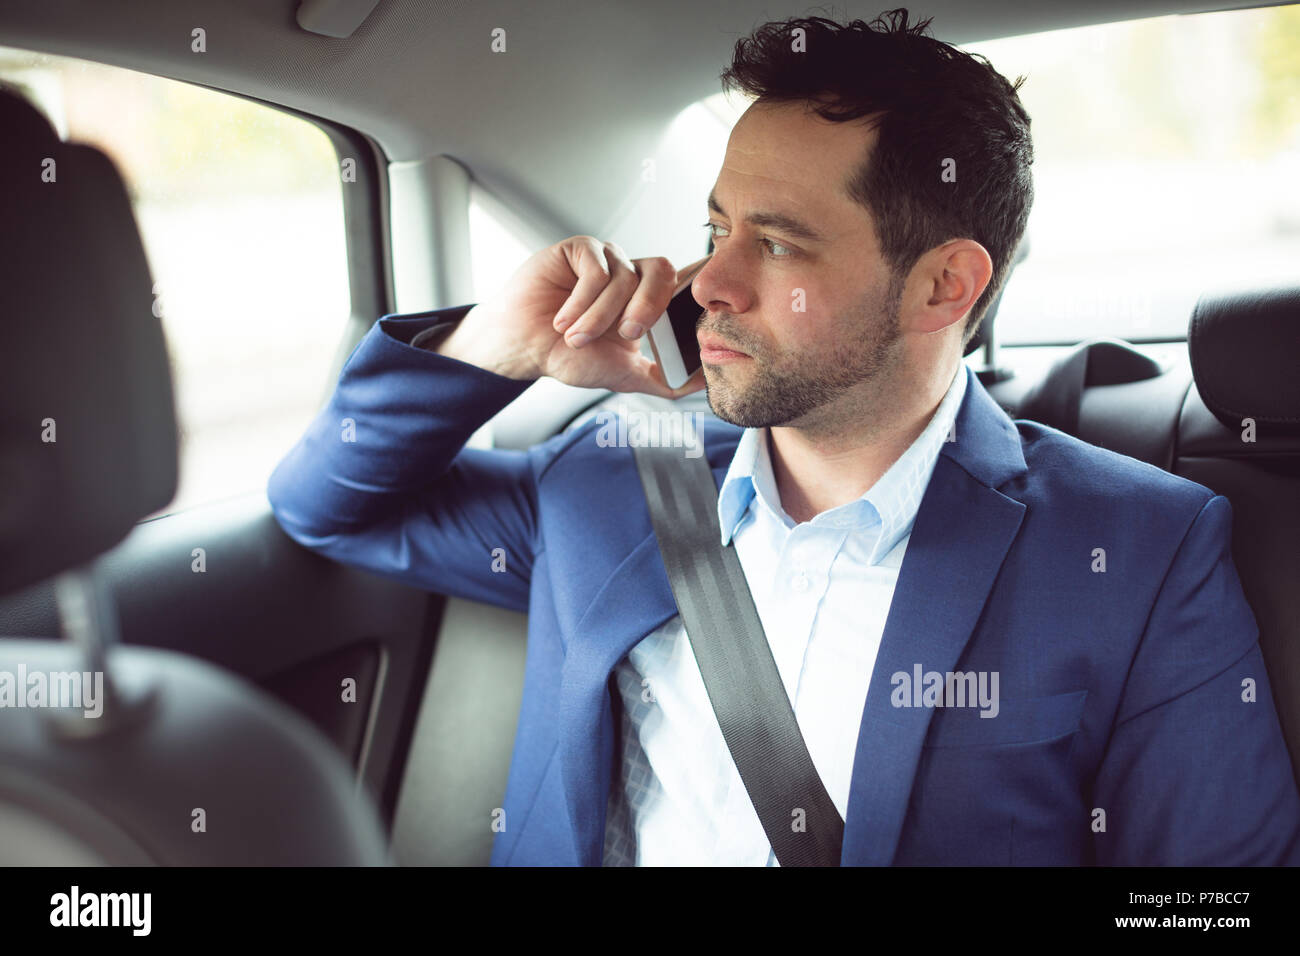 Businessman talking on mobile phone in a car - Stock Image